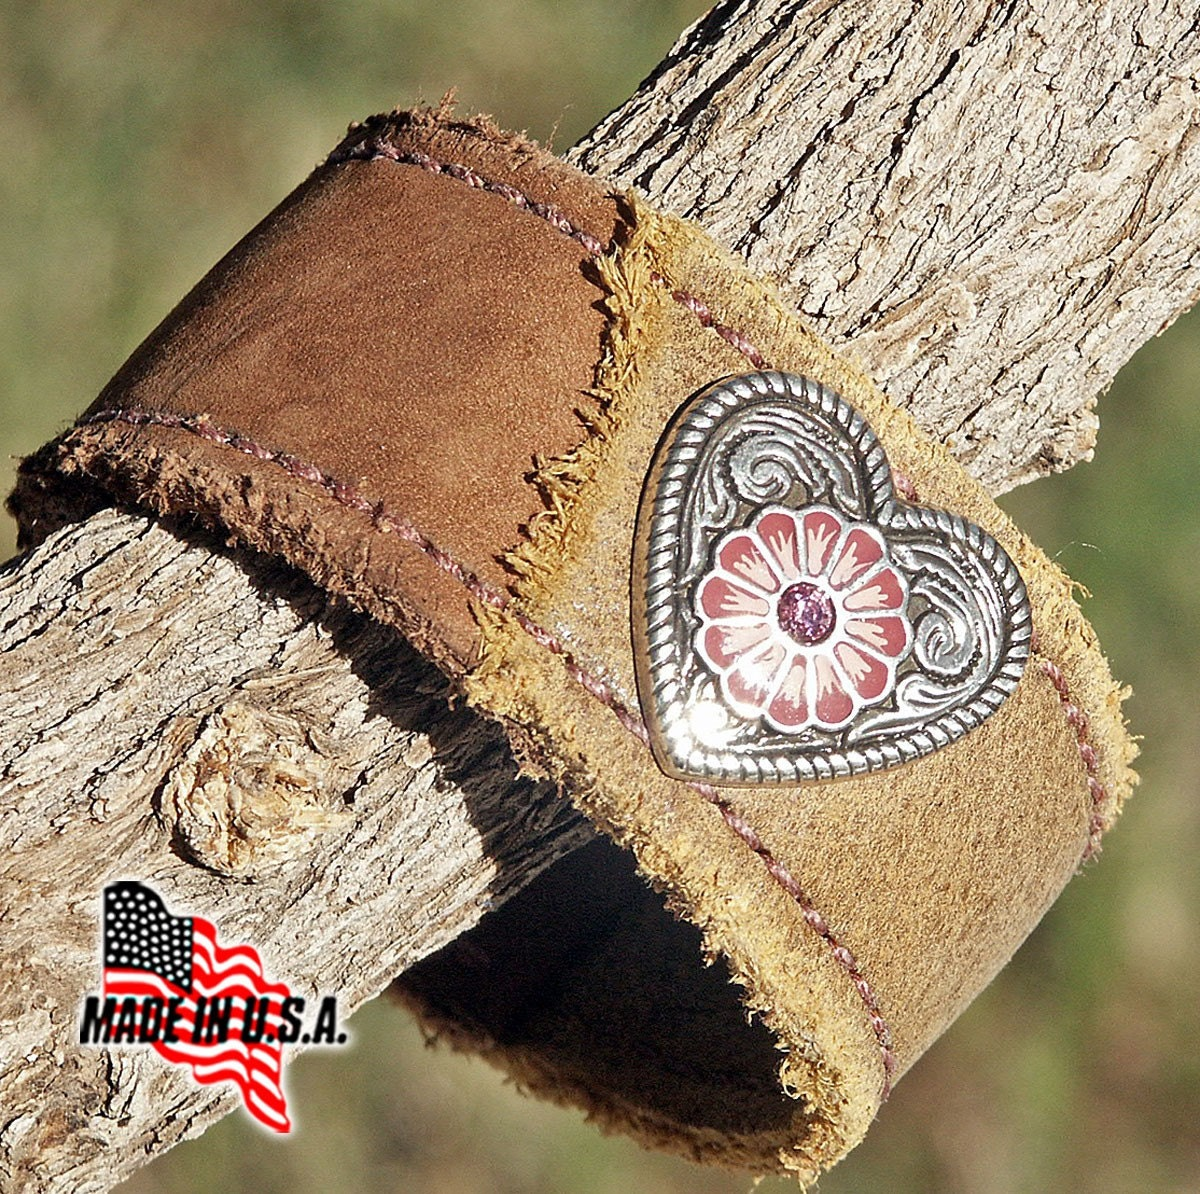 MM Ranchwear :: National Finals Rodeo concho belts and concho dog